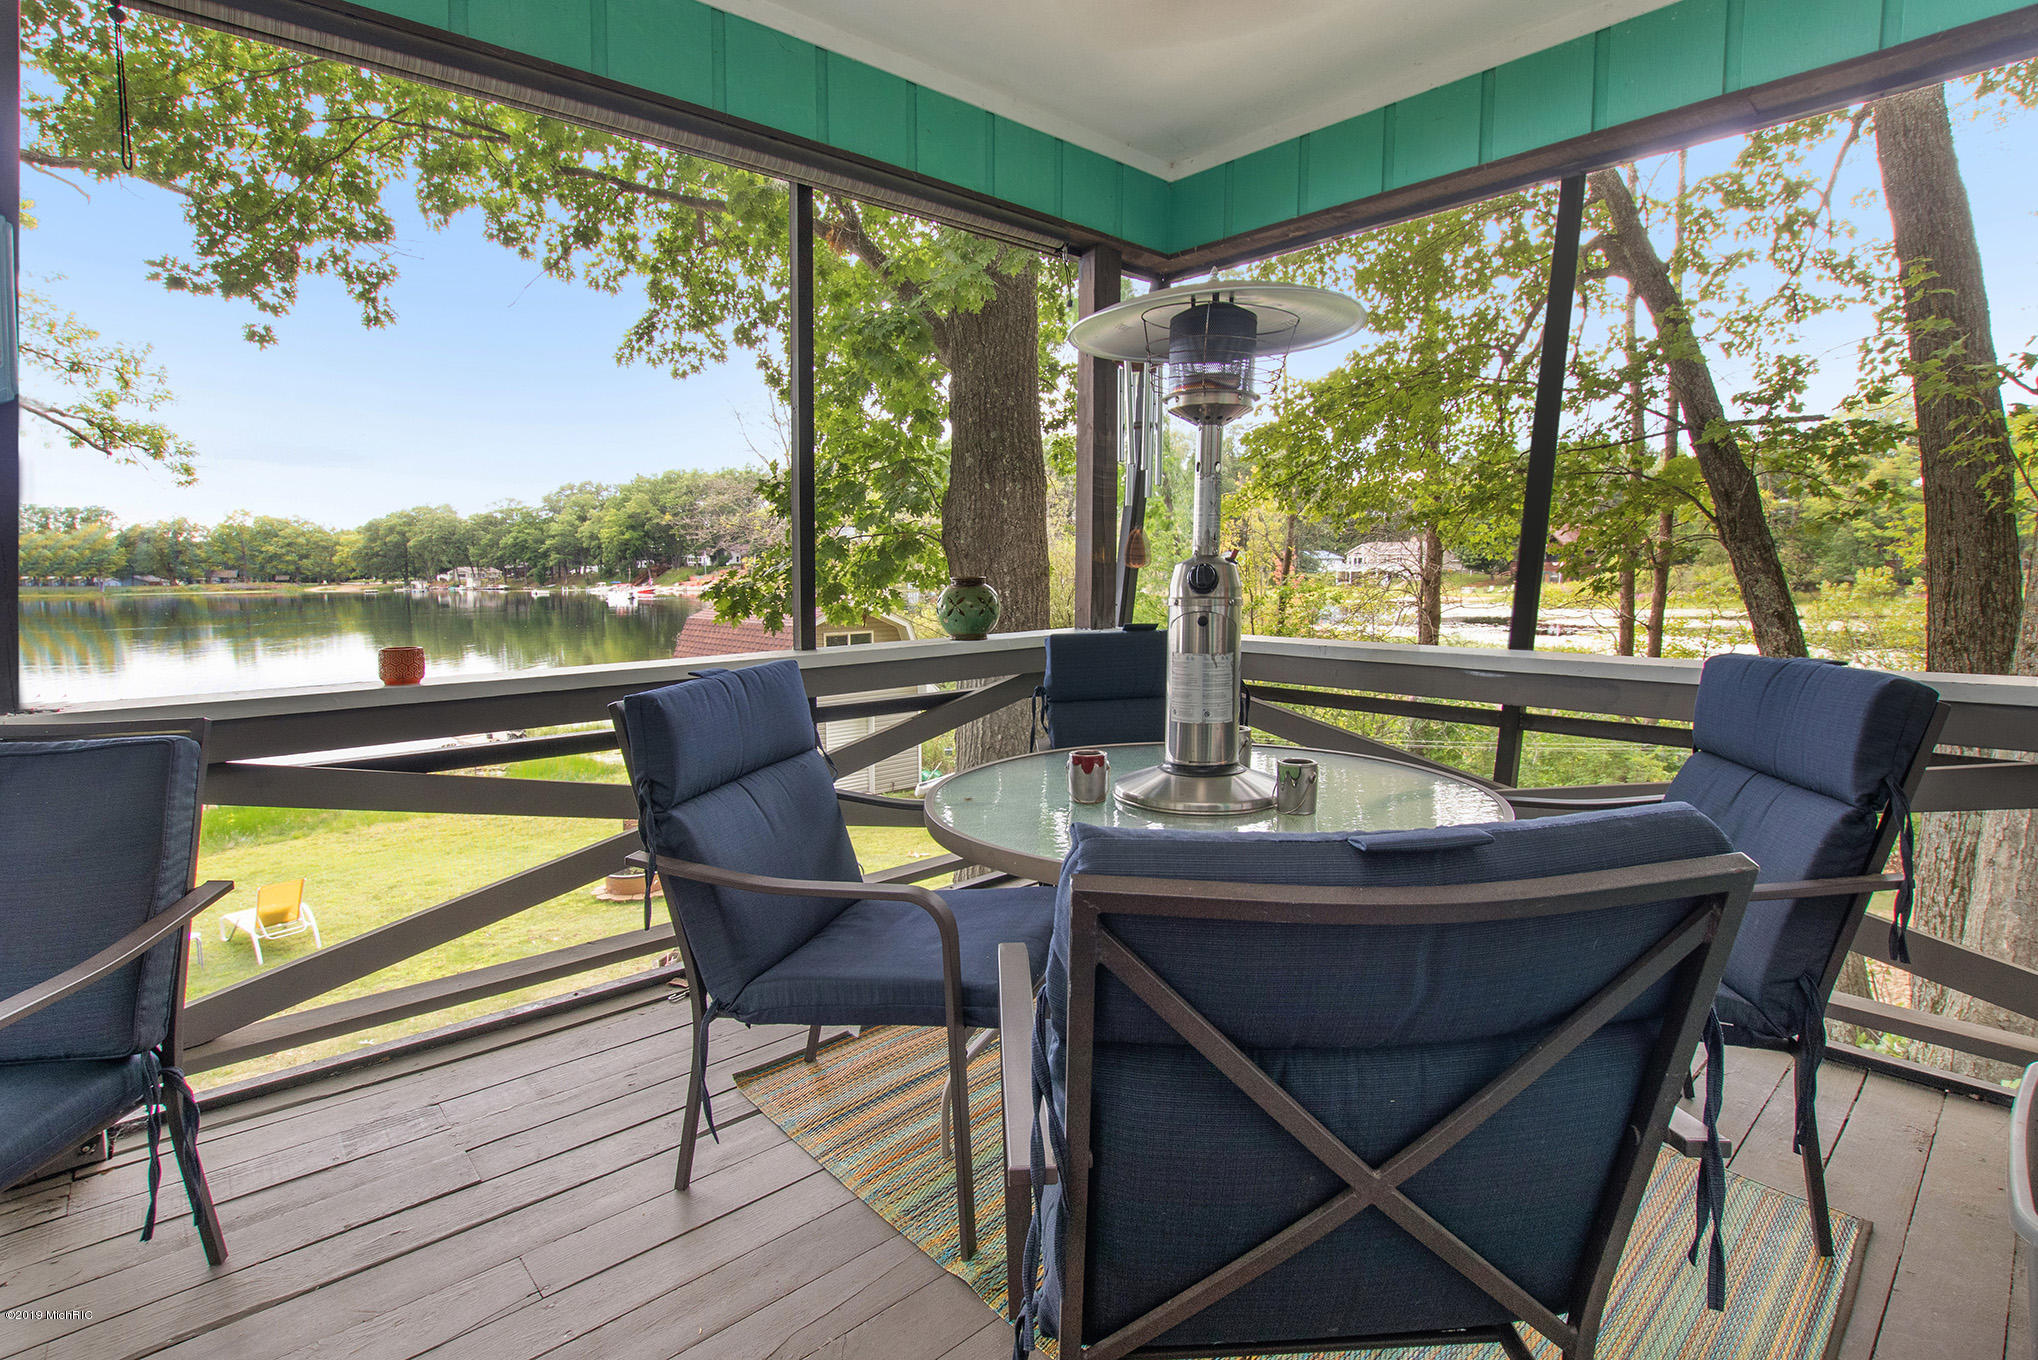 Screen porch overlooking the lake